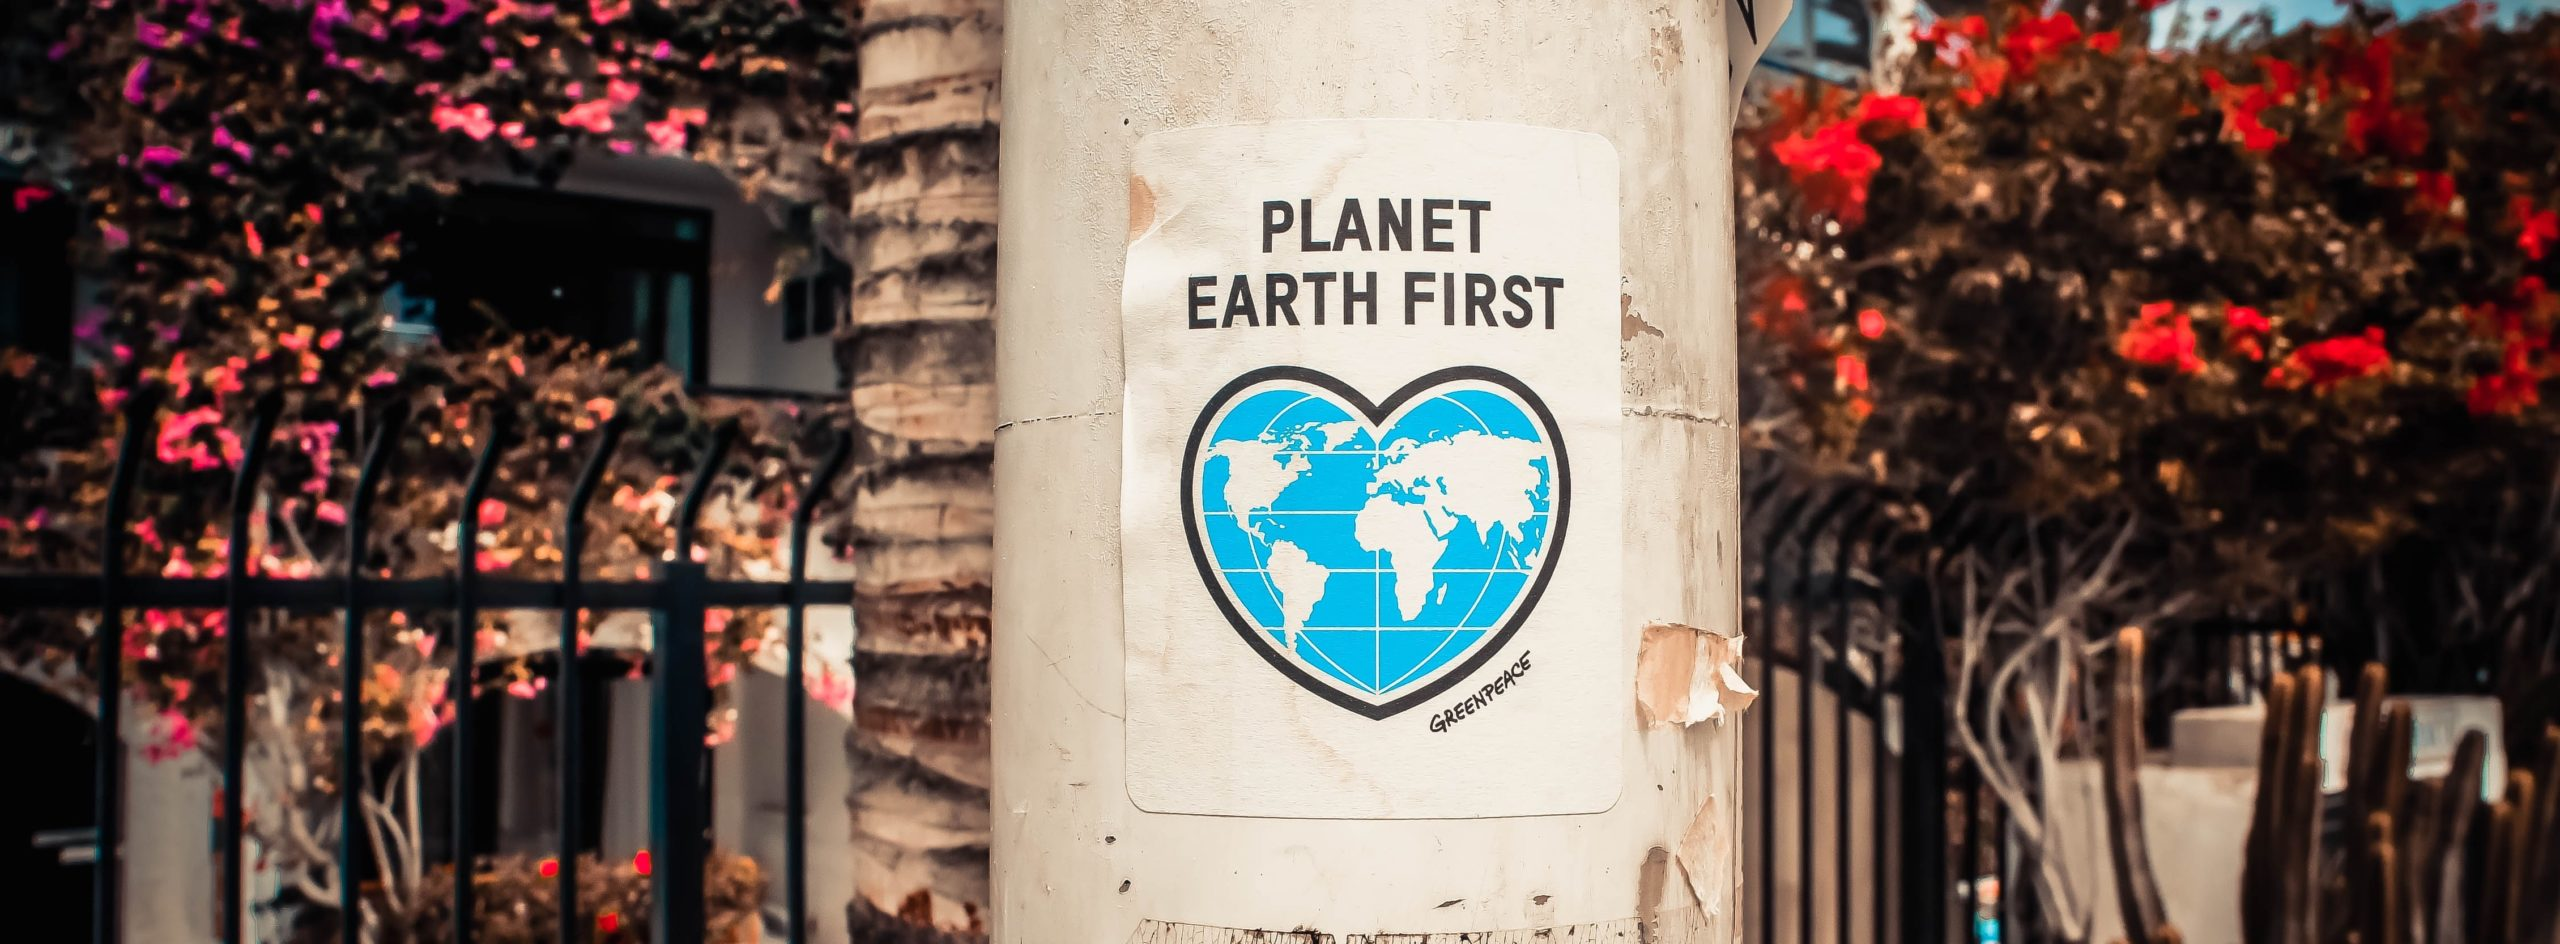 planet-earth-first-poster-on-a-concrete-post-3302183